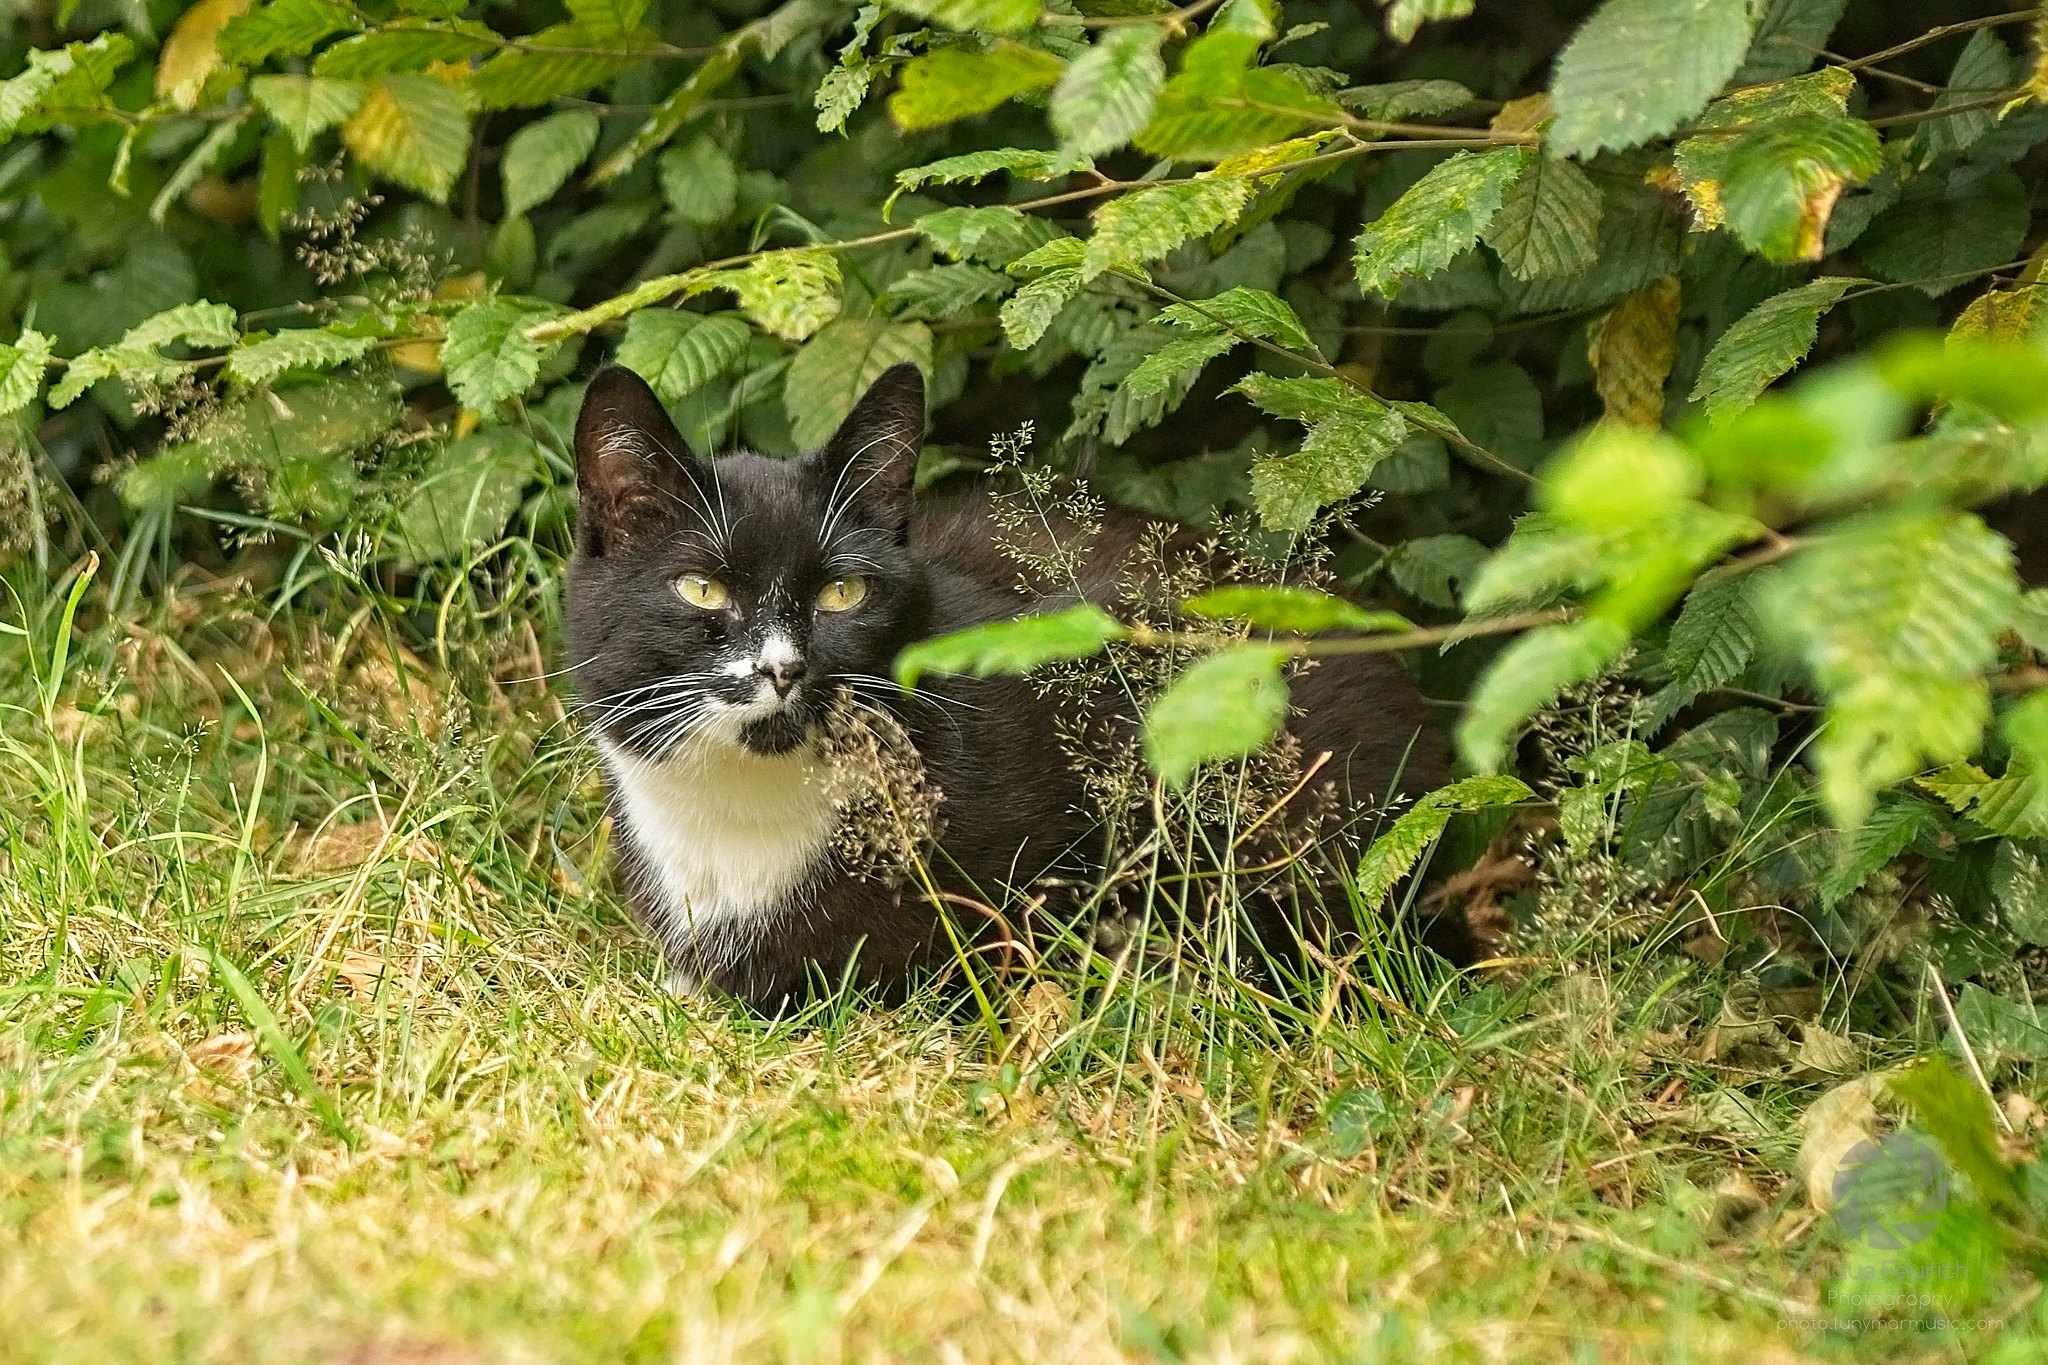 Kira Cat in a hedge - Shot with Nikon D90 and Tokina AT-X 270 AF PRO II - (Aperture ƒ/4.0 - focal length 70mm - shutter 1/125 - ISO 400)